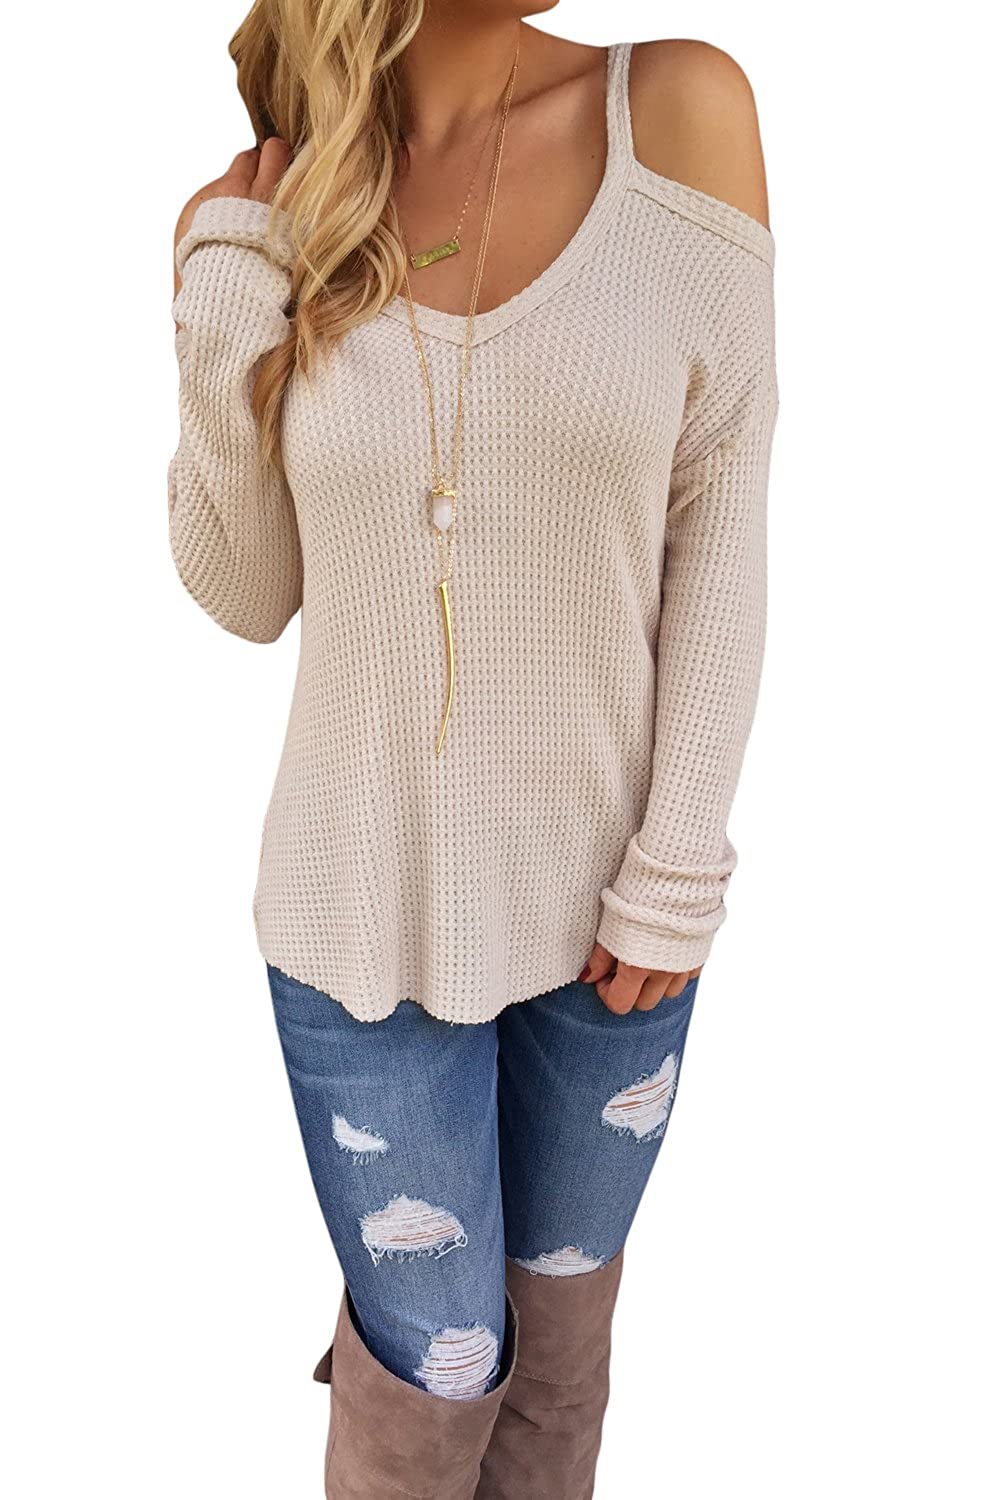 Ferbia Sweaters for Women Cold Shoulder Long Sleeve Cut out ...